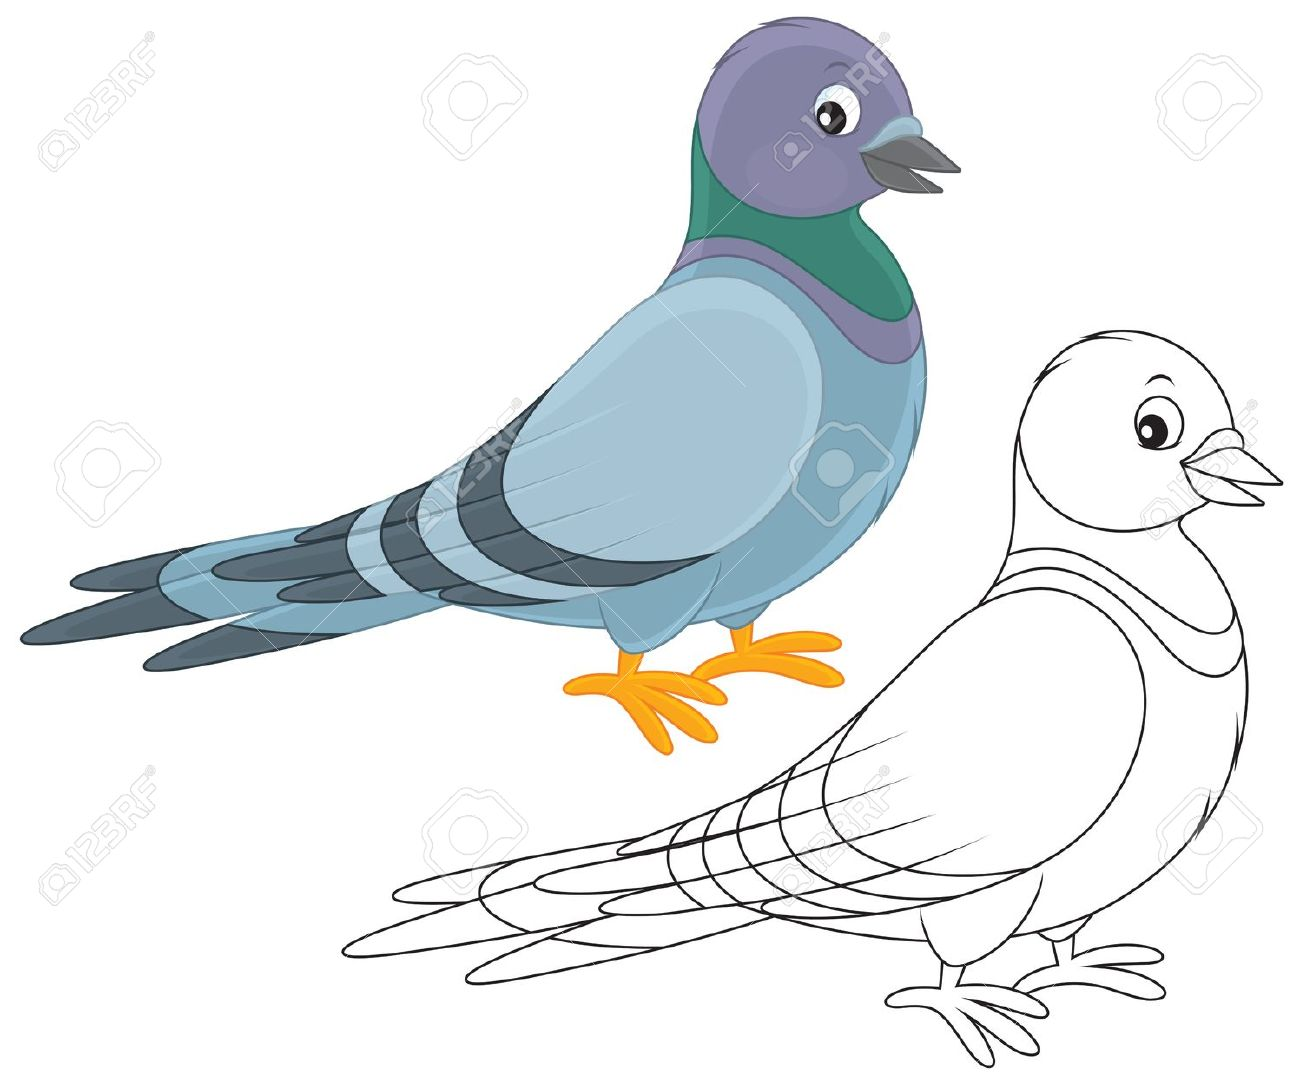 Gray Pigeon Royalty Free Cliparts, Vectors, And Stock Illustration.